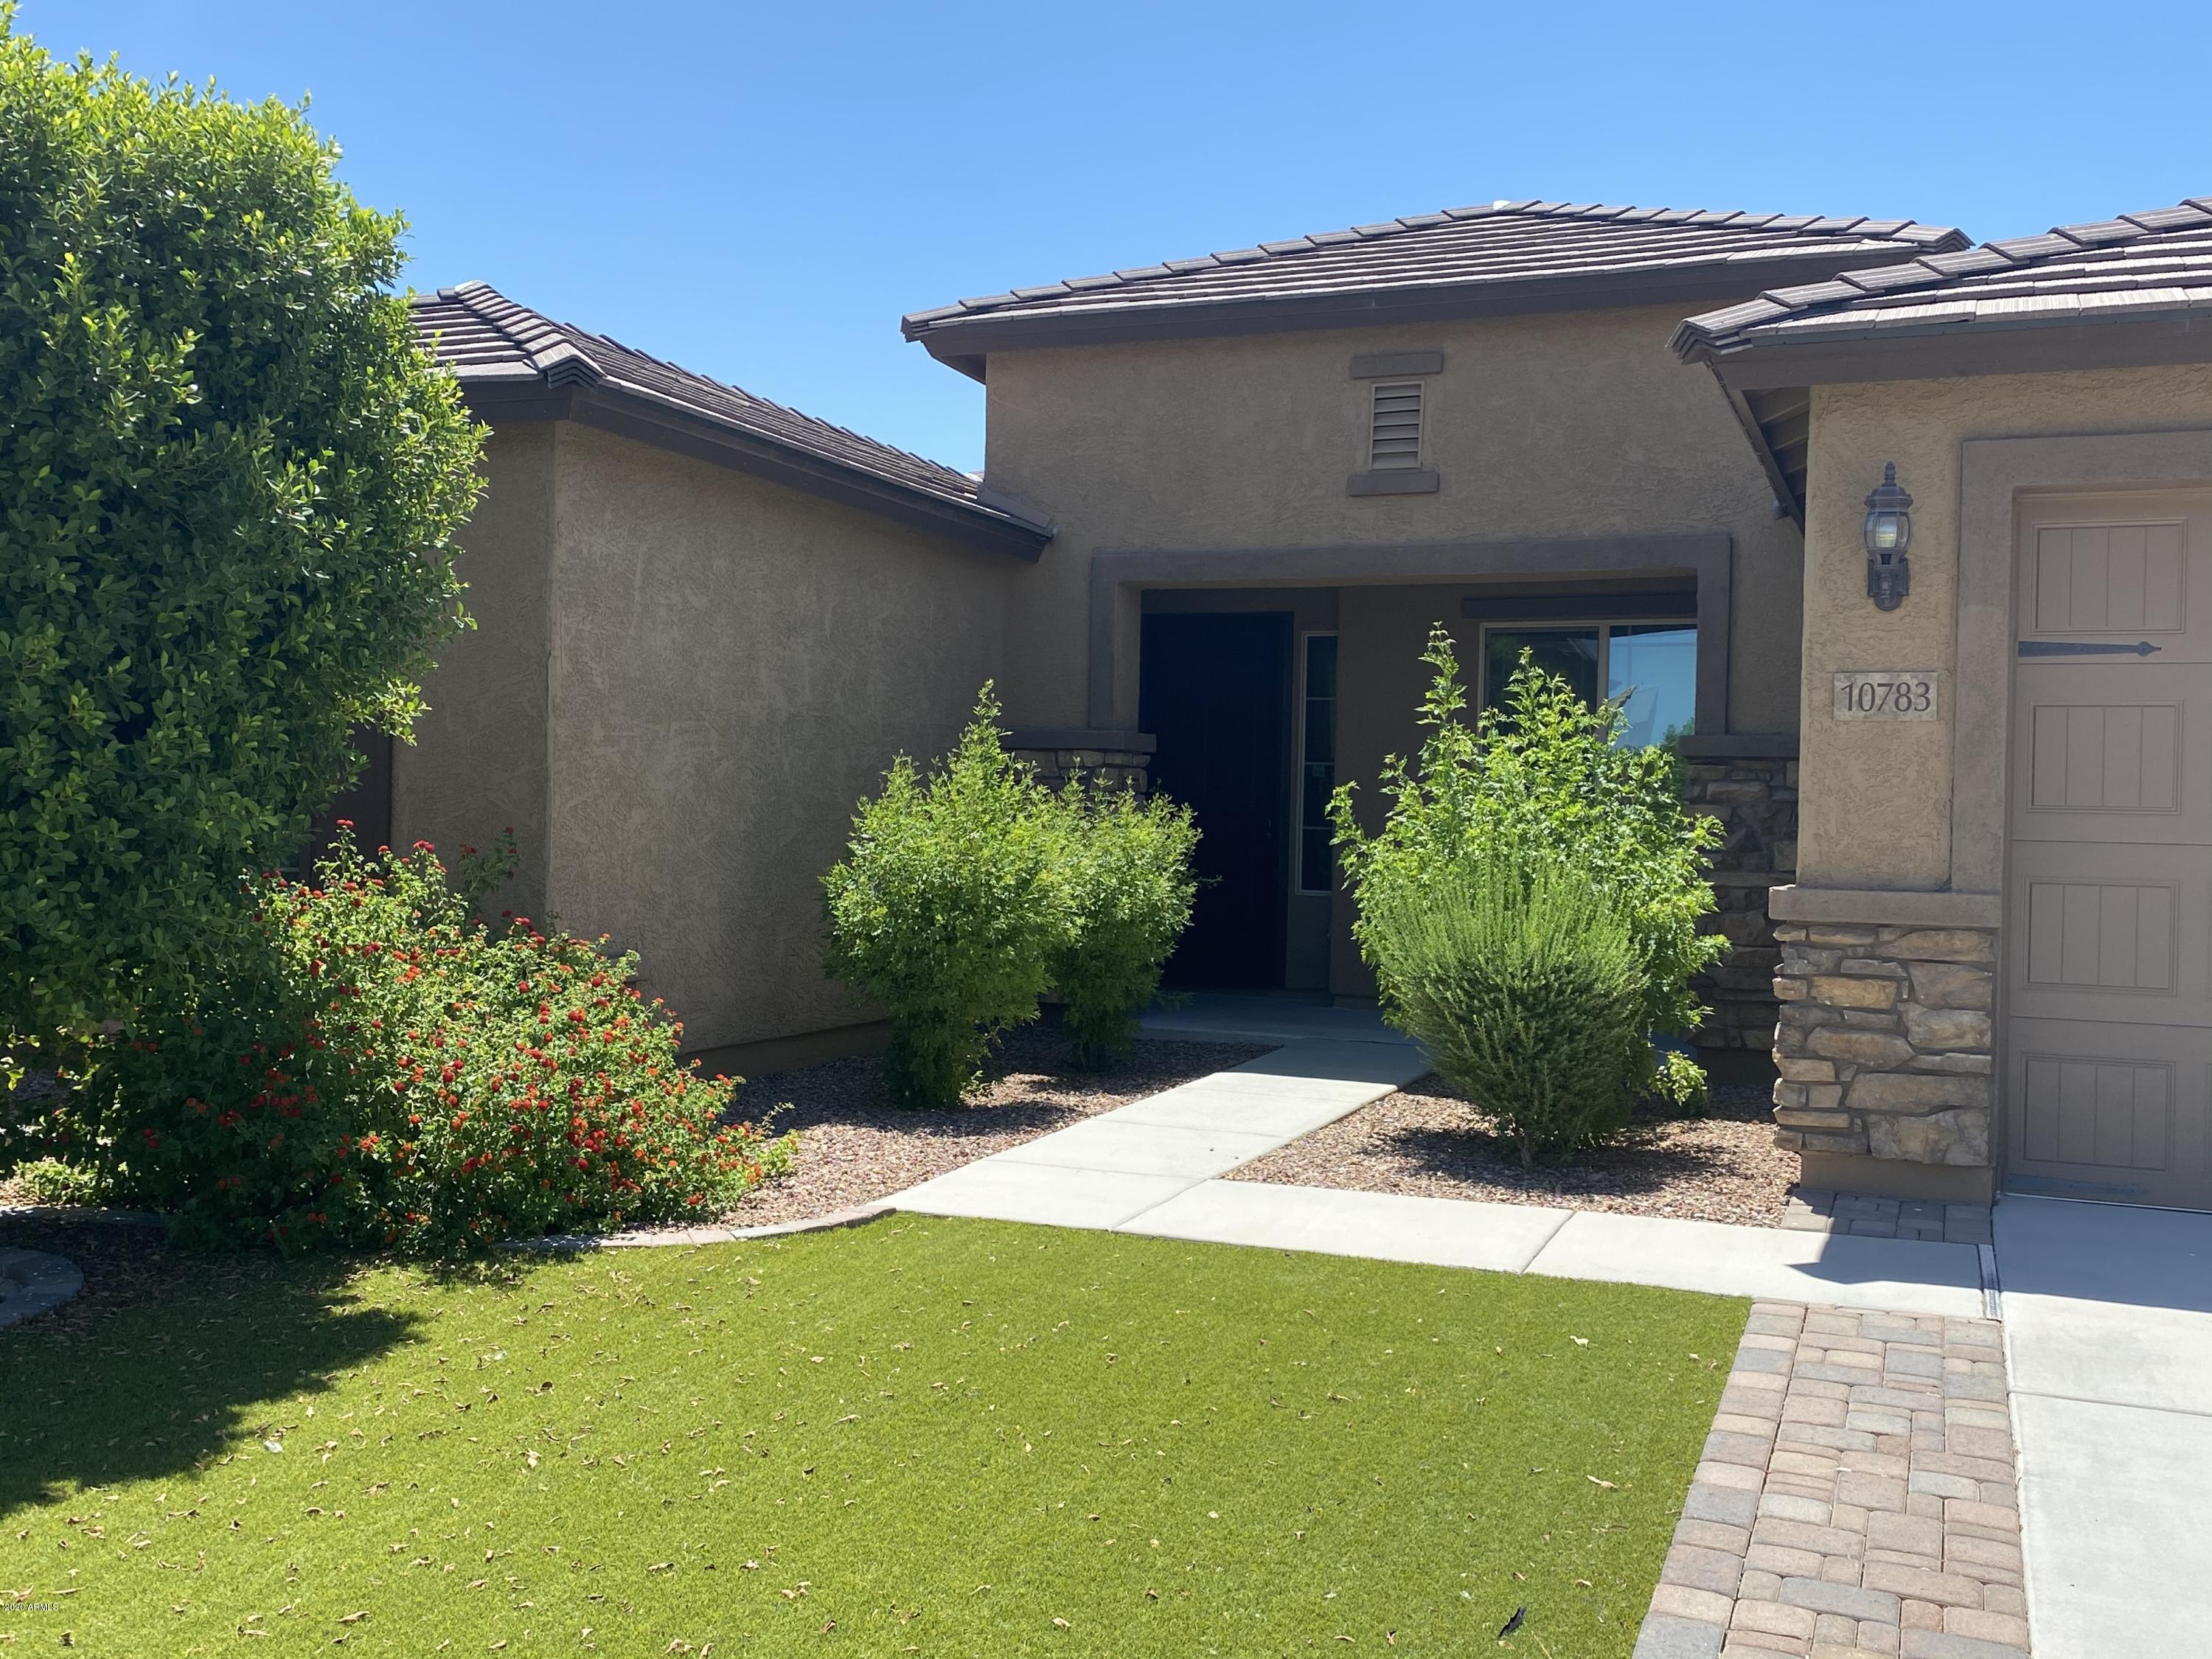 Photo of 10783 W Whitehorn Way, Peoria, AZ 85383